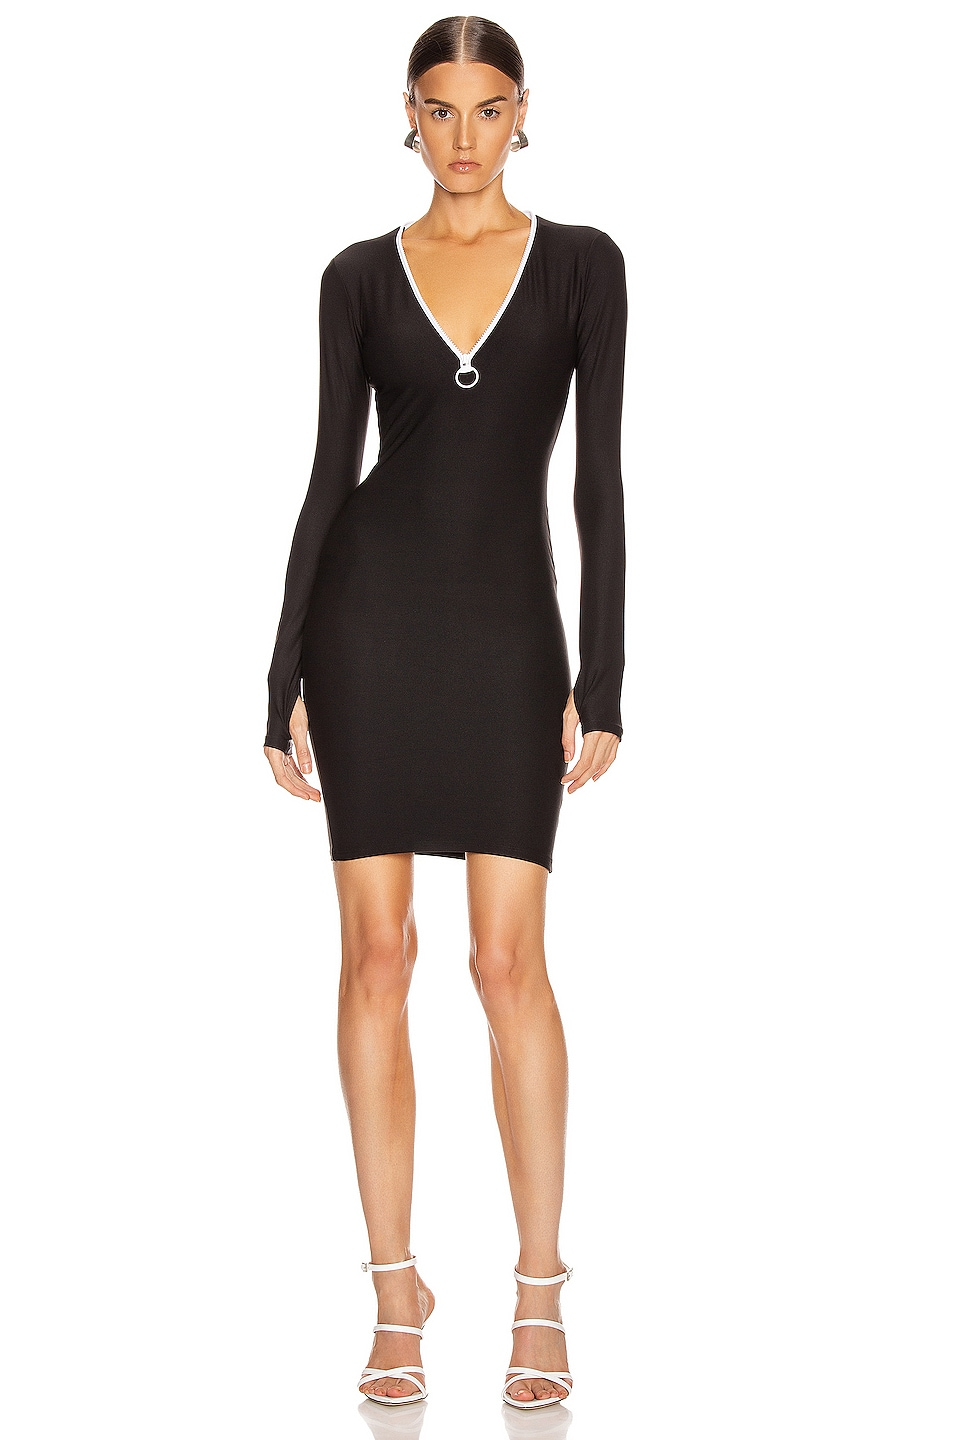 Image 1 of ALIX NYC Snyder Dress in Black